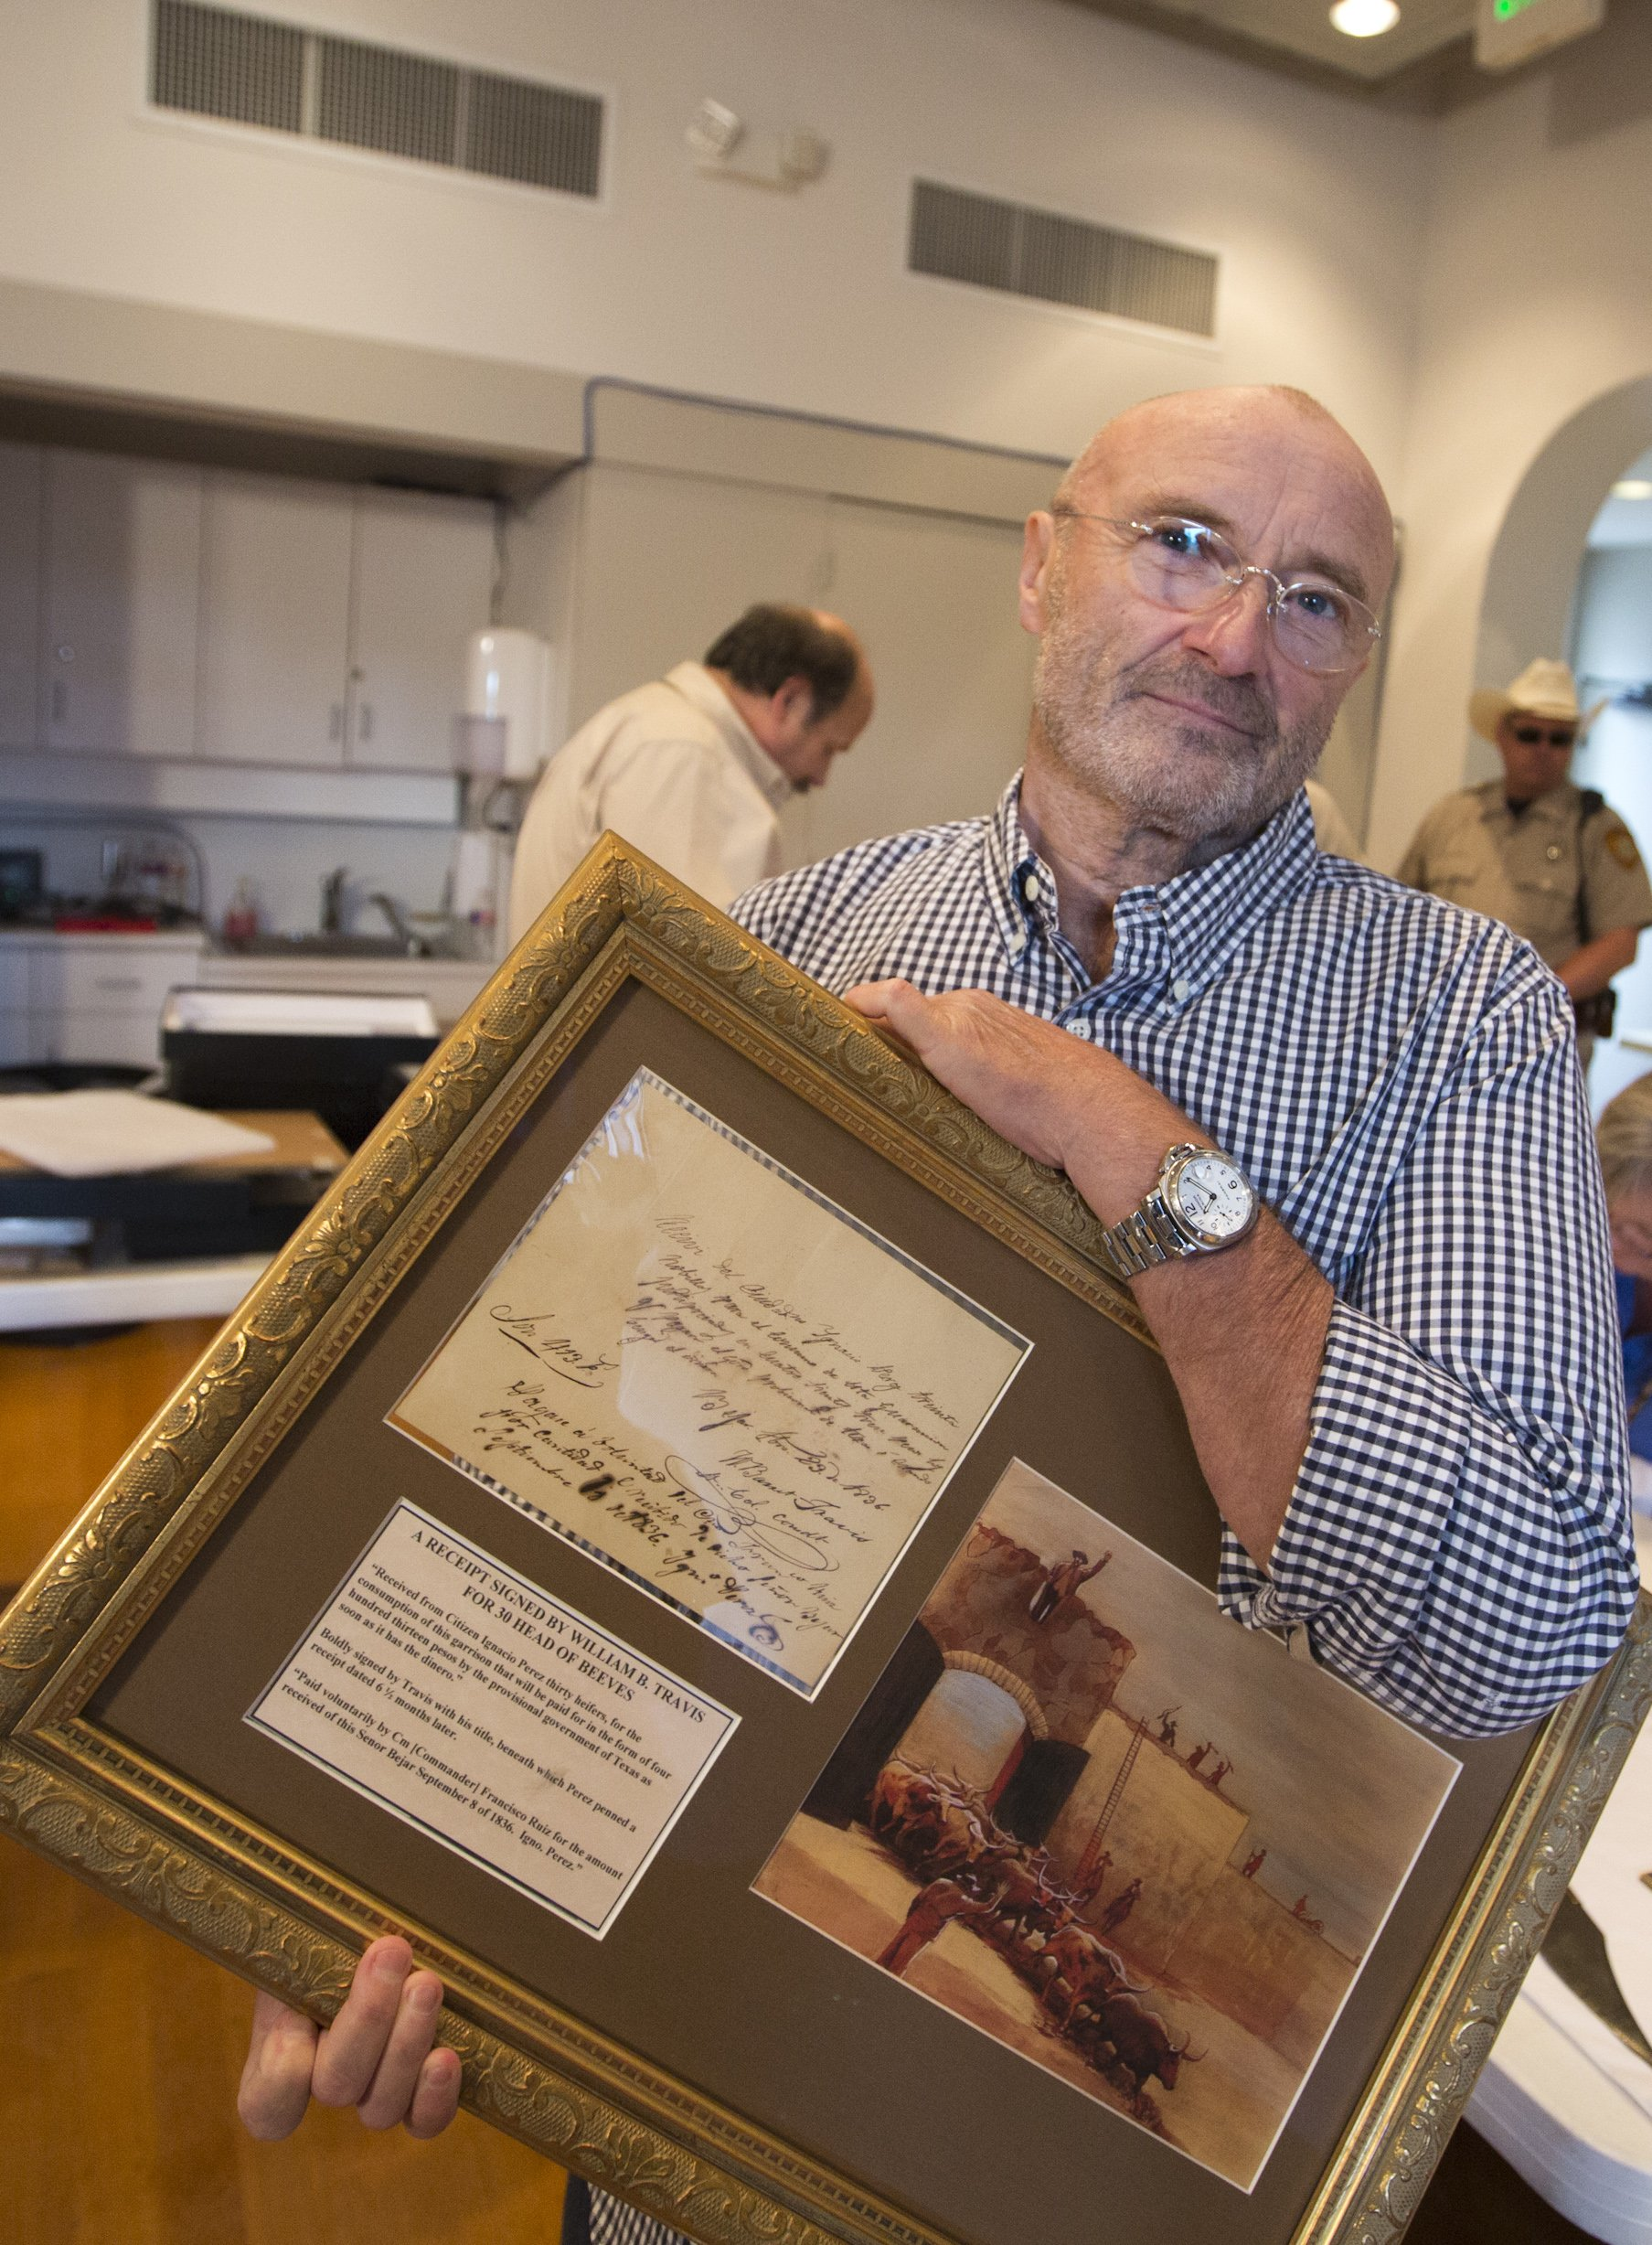 British music legend, Phil Collins donates what is considered the biggest collection of Alamo artifacts to the people of Texas on Oct. 28, 2014.